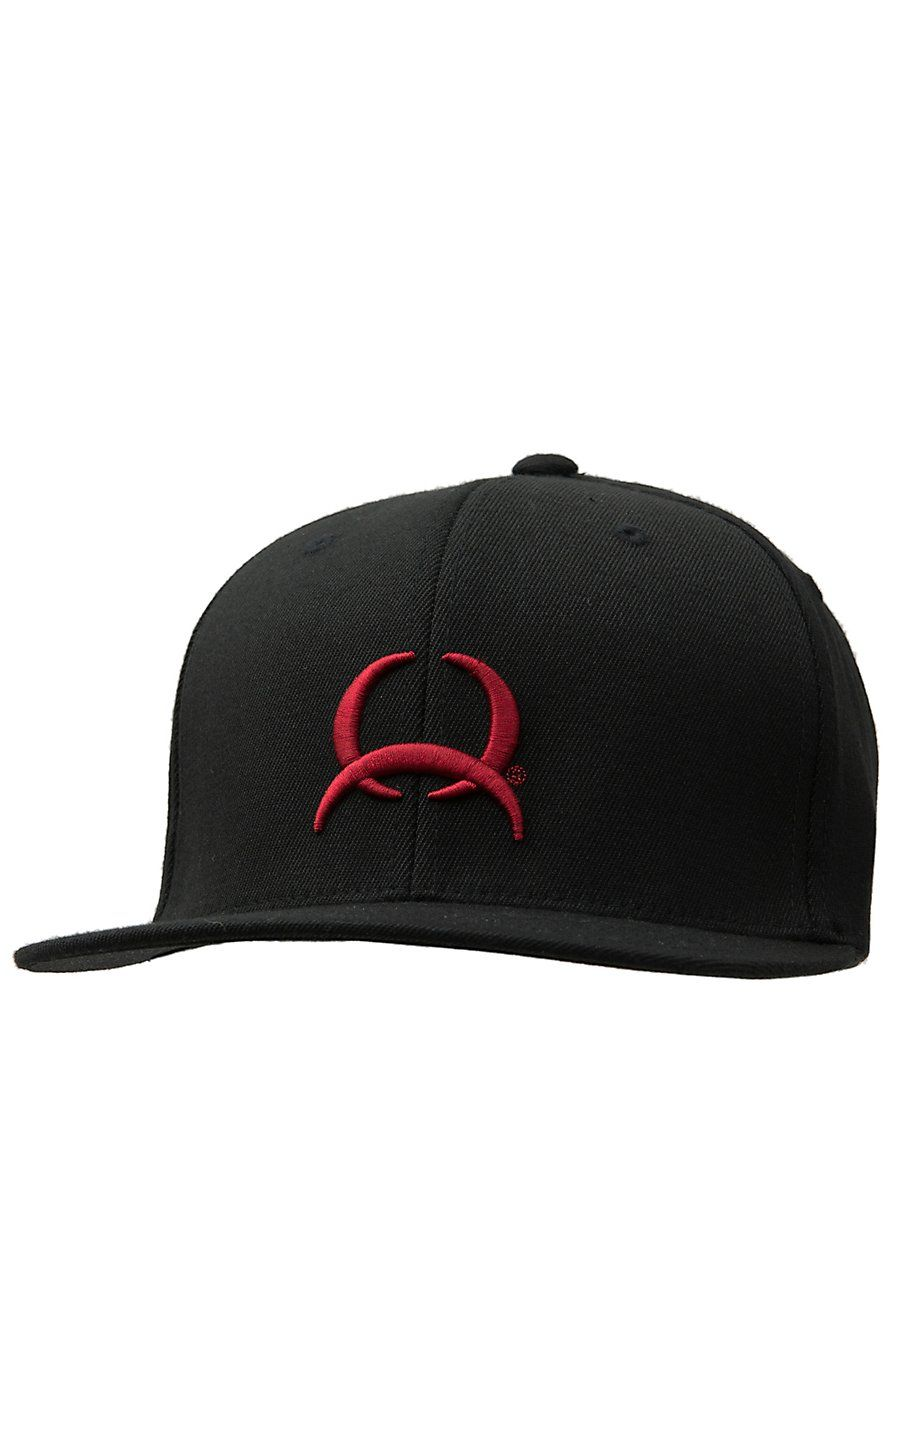 Cinch Black with Red Tech Logo Flex Fit Cap  a9074acd50a